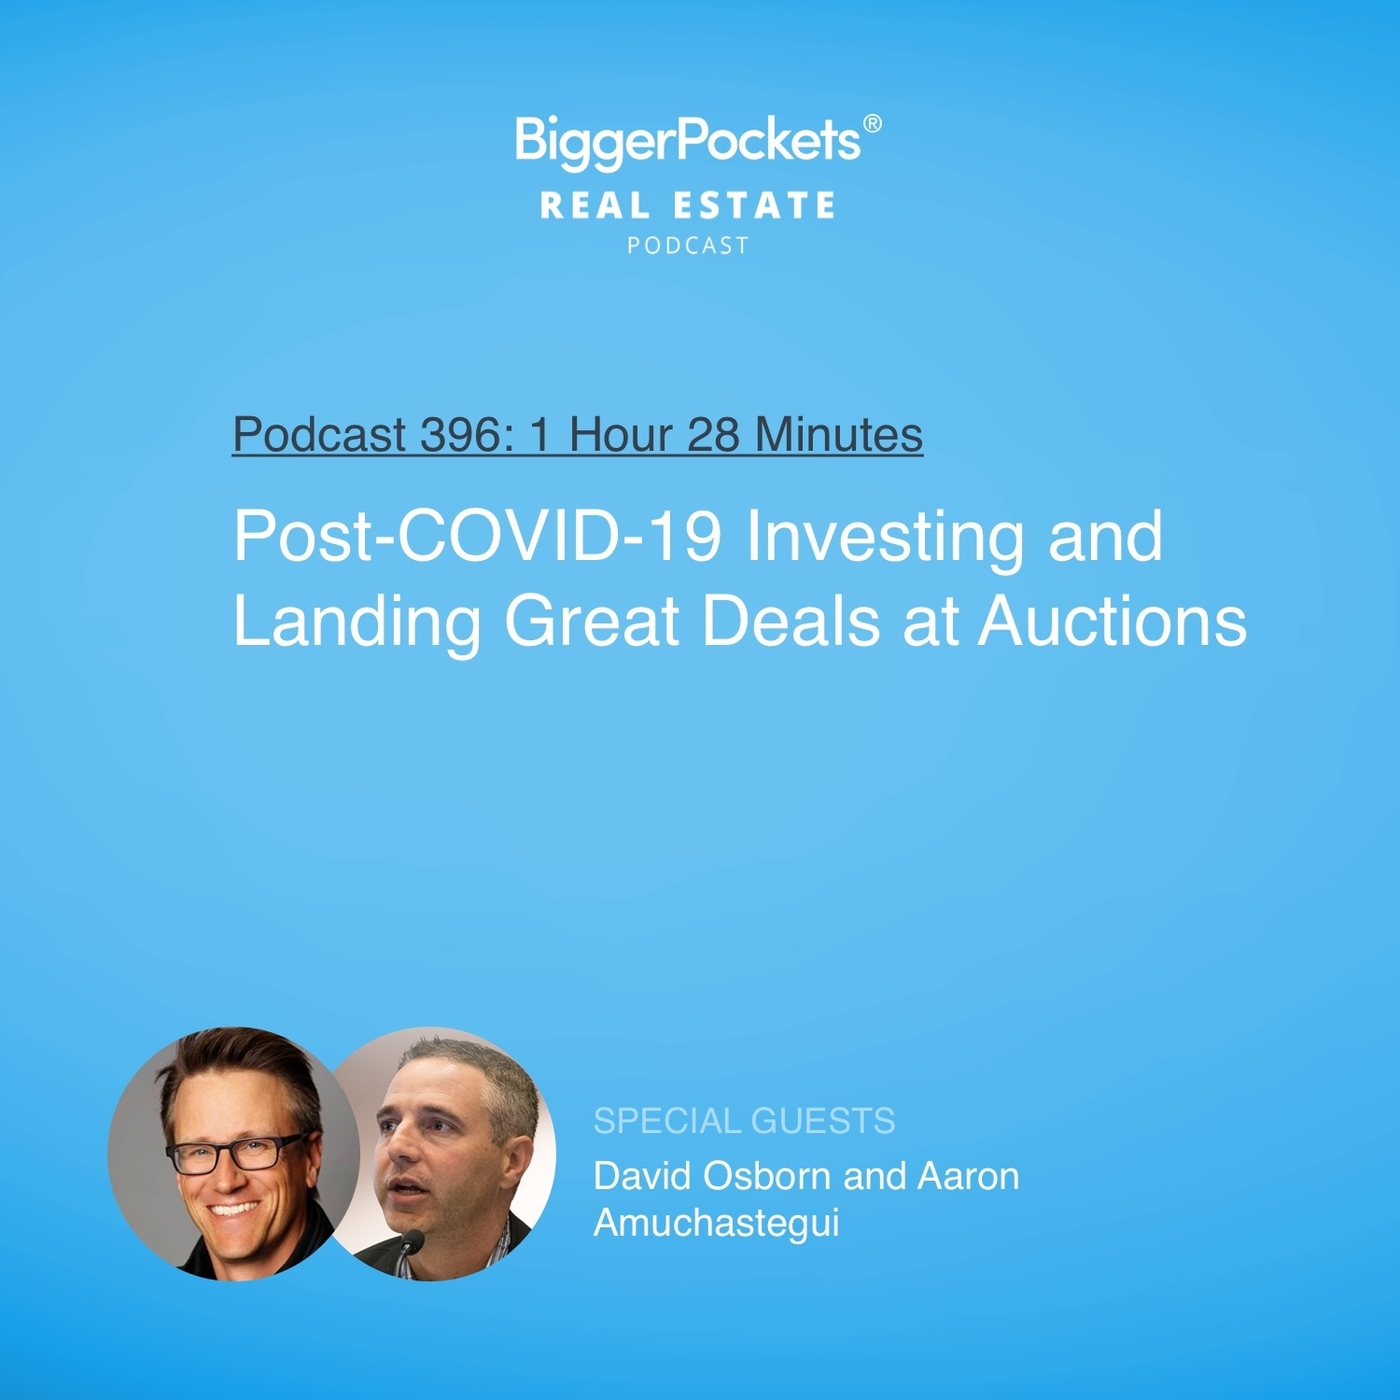 396: Post-COVID-19 Investing and Landing Great Deals at Auctions with David Osborn and Aaron Amuchastegui